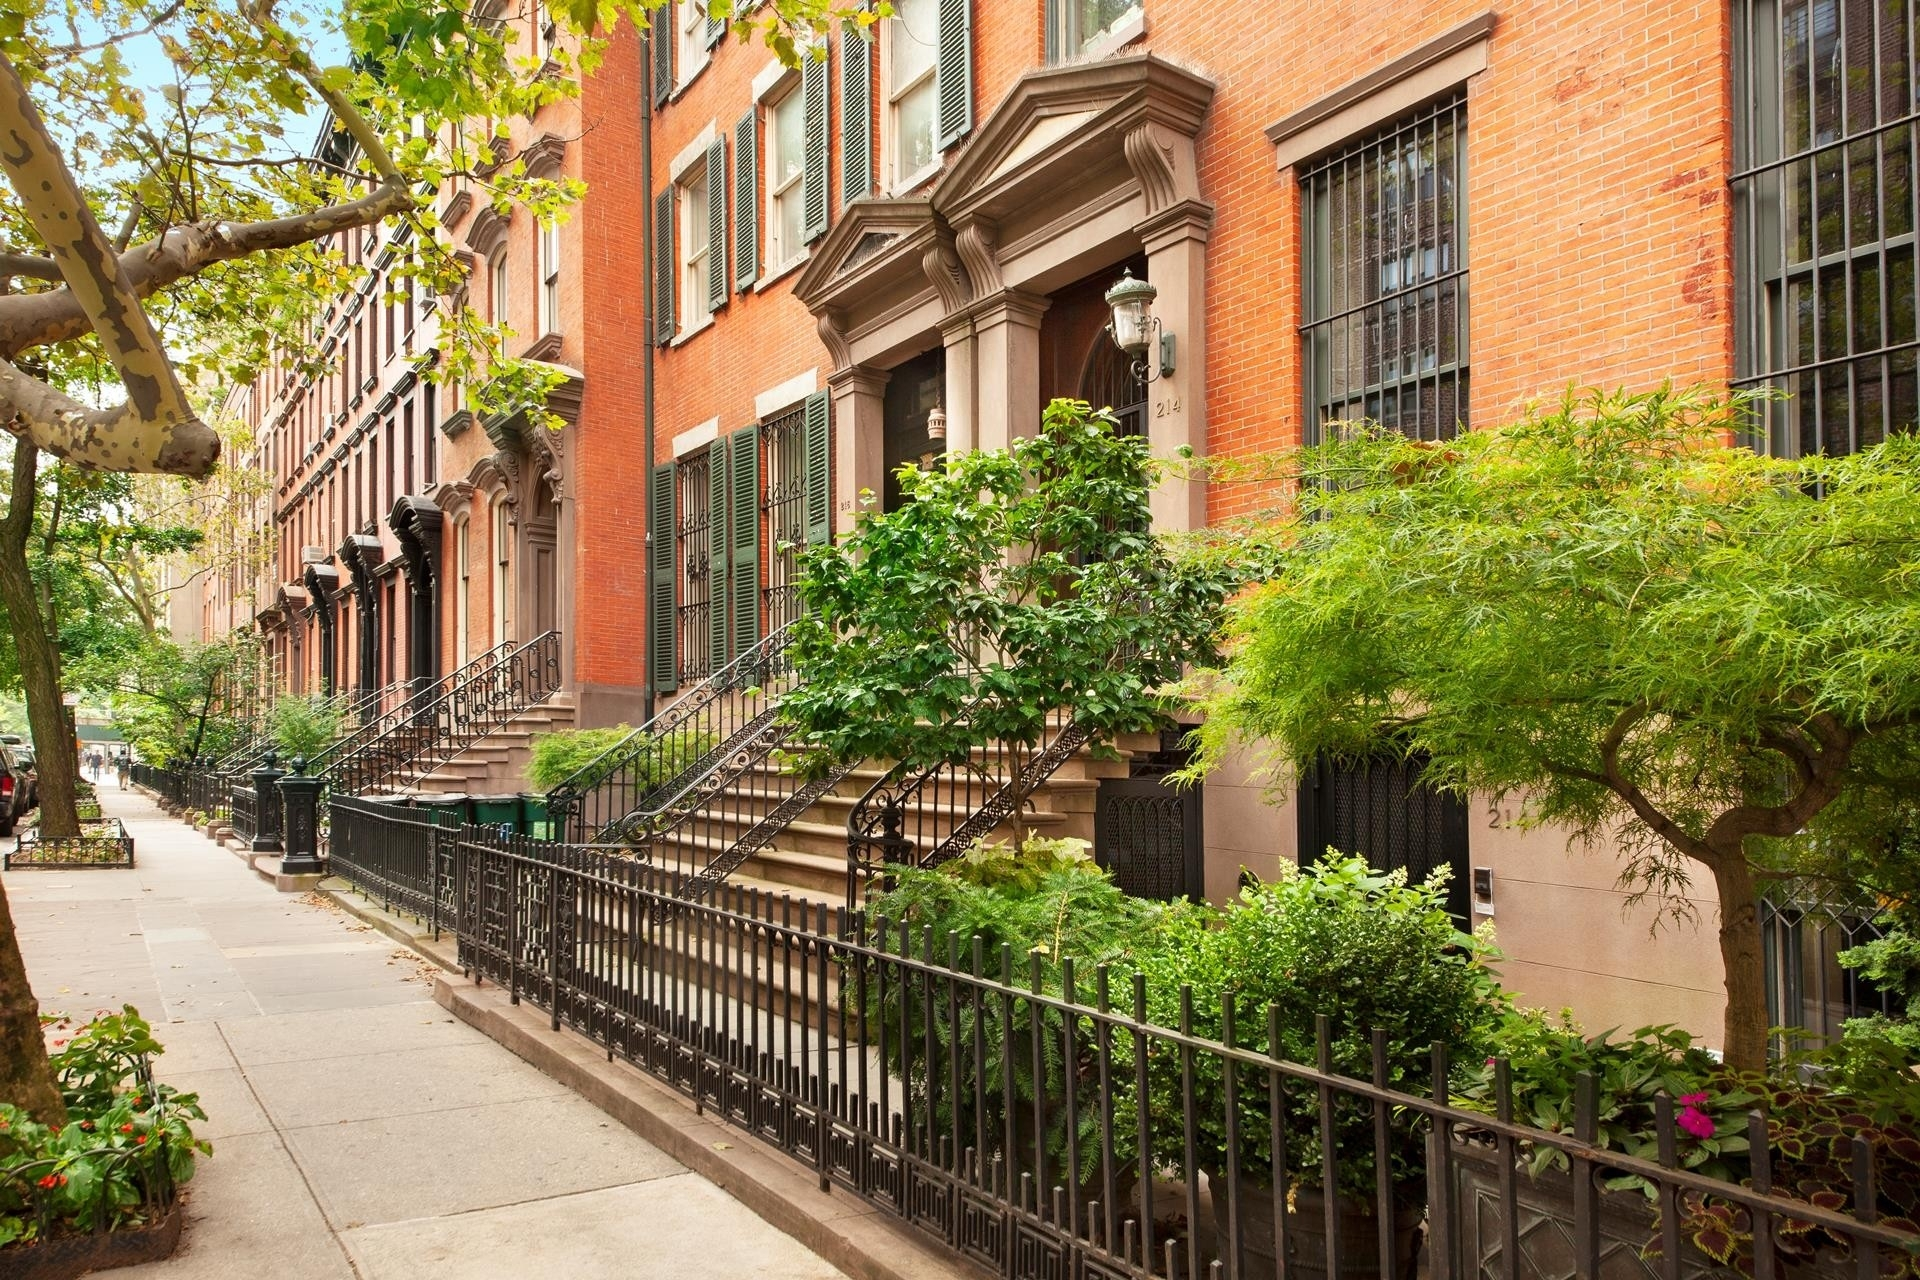 Casa unifamiliar unifamiliar por un Venta en 214 E 18TH ST , TOWNHOUSE Gramercy Park, New York, NY 10003